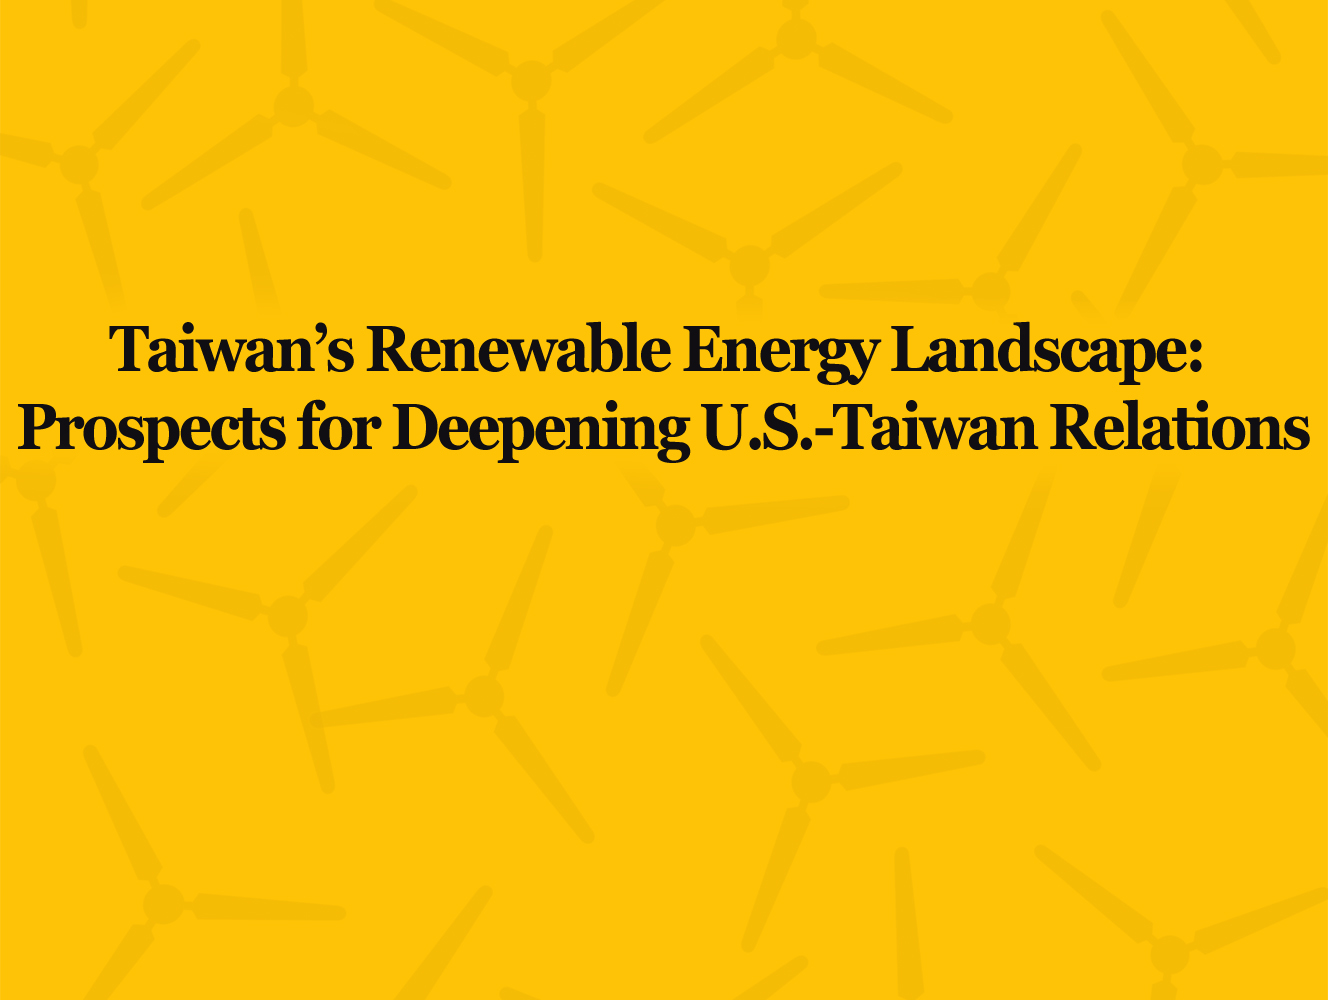 Report: Taiwan Renewable Energy Landscape & Prospects for Deepening U.S.-Taiwan Relations